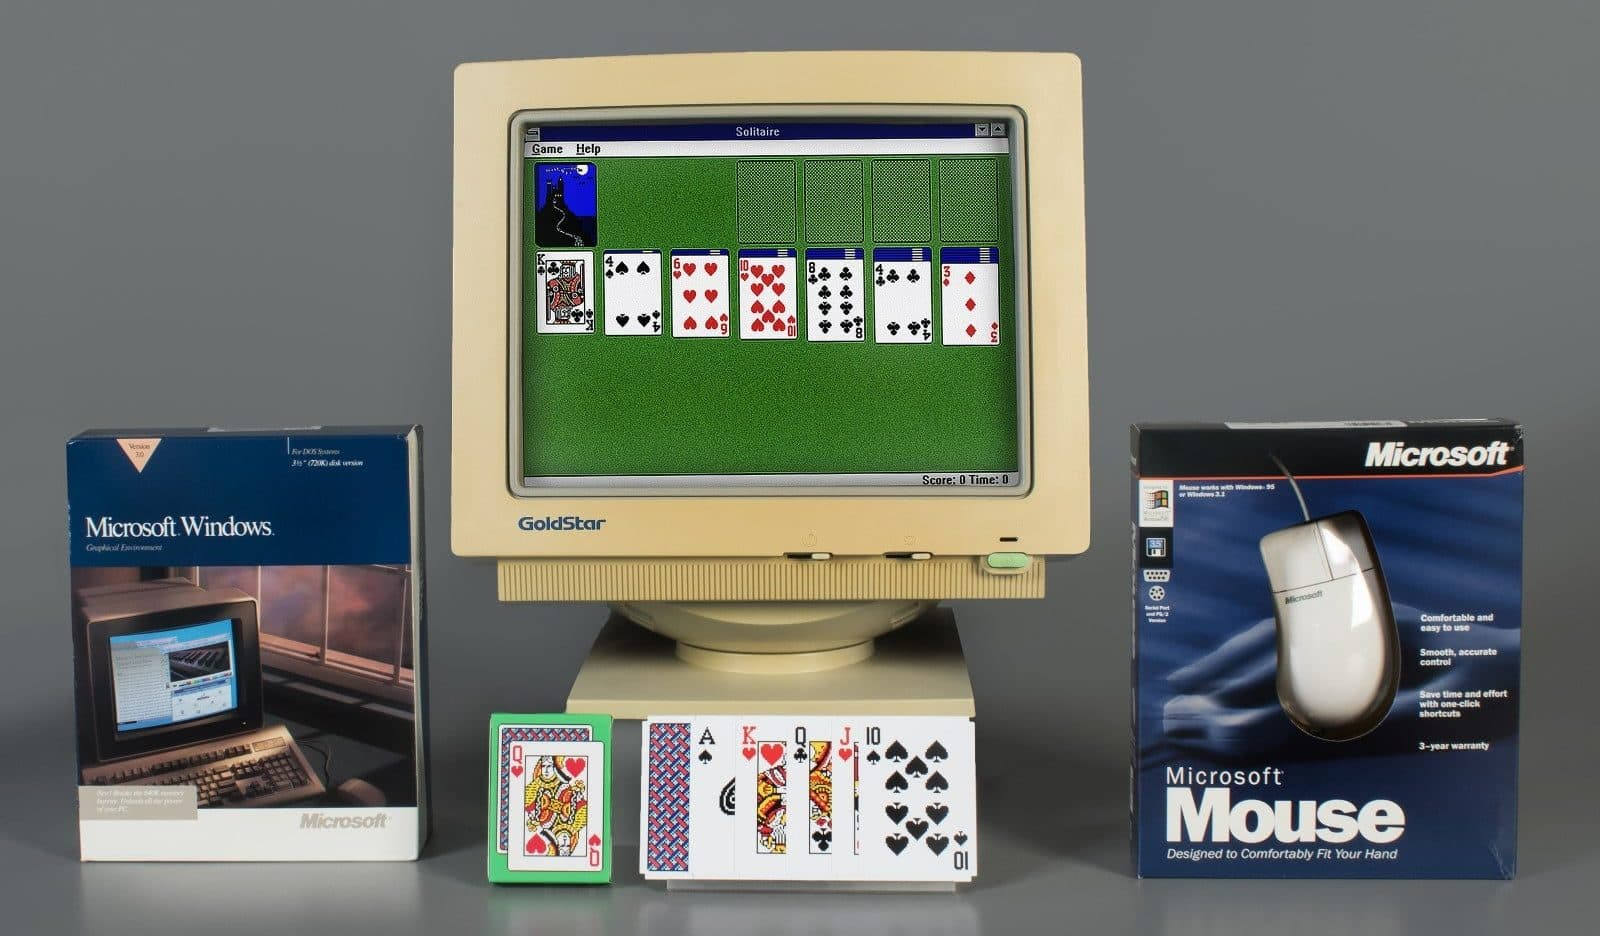 solitaire introduced to video game hall of fame